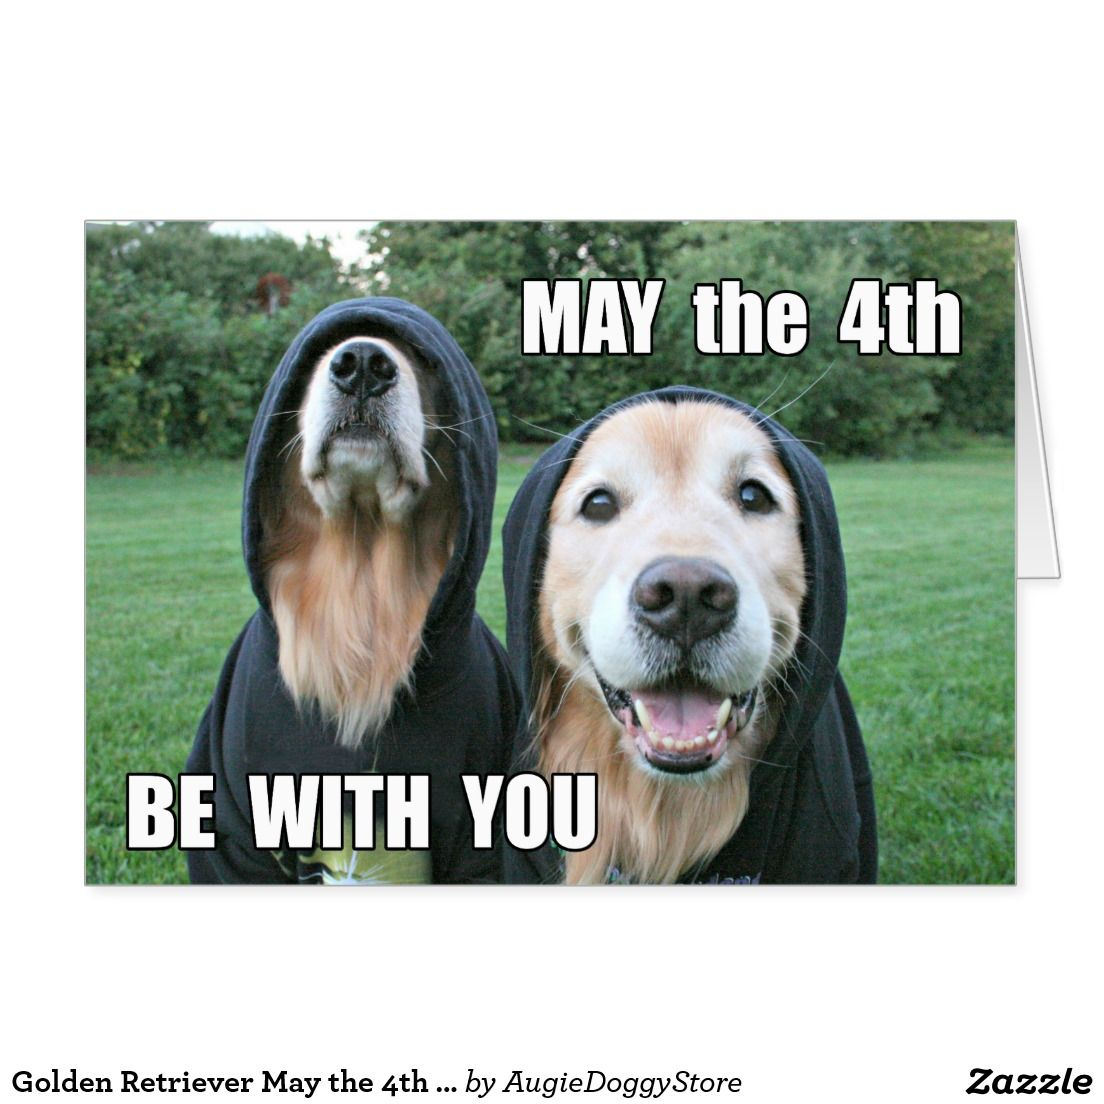 May The 4th Be With You Dog: Golden Retriever May The 4th Be With You Parody Card